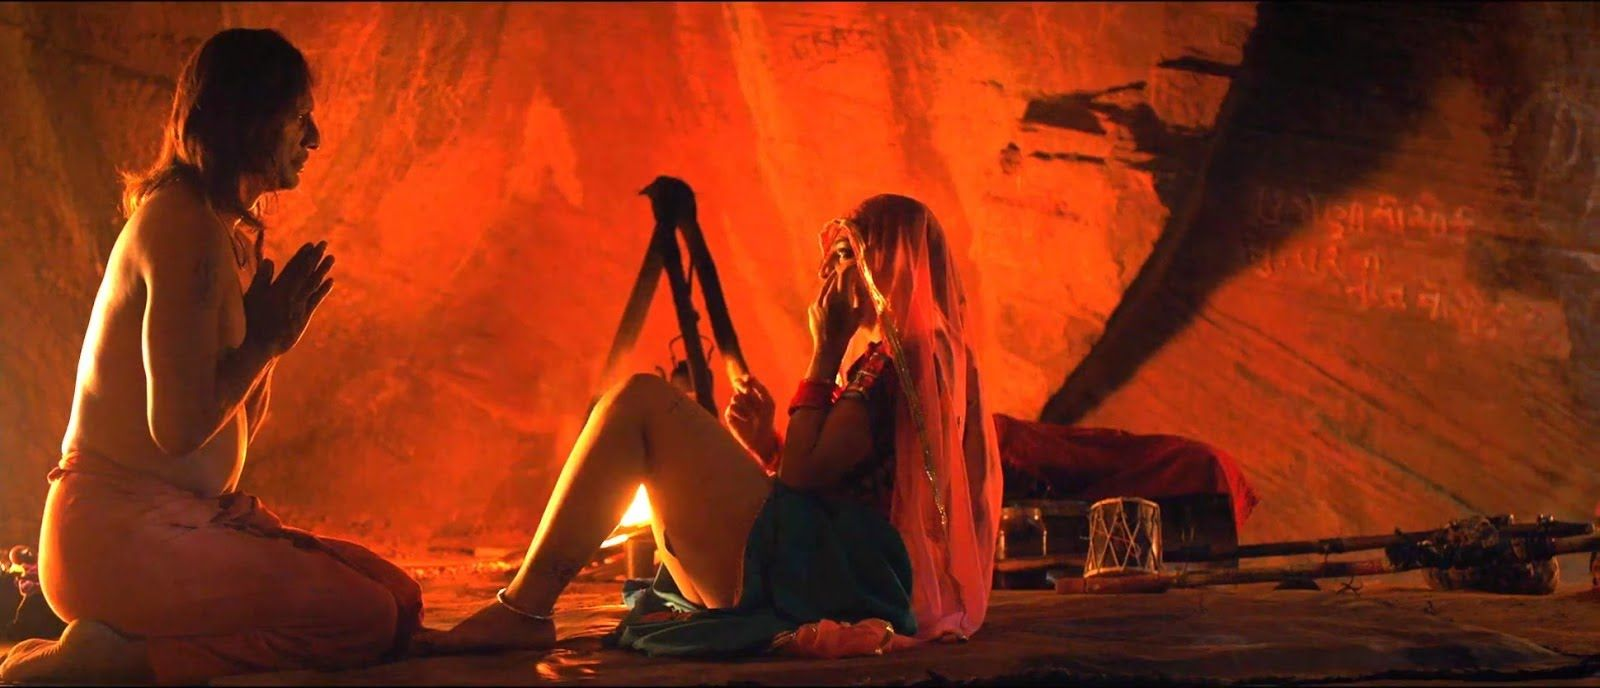 Radhika Apte Hot Scene From Parched  Official Trailer  Ajay Devgn  Le -5714